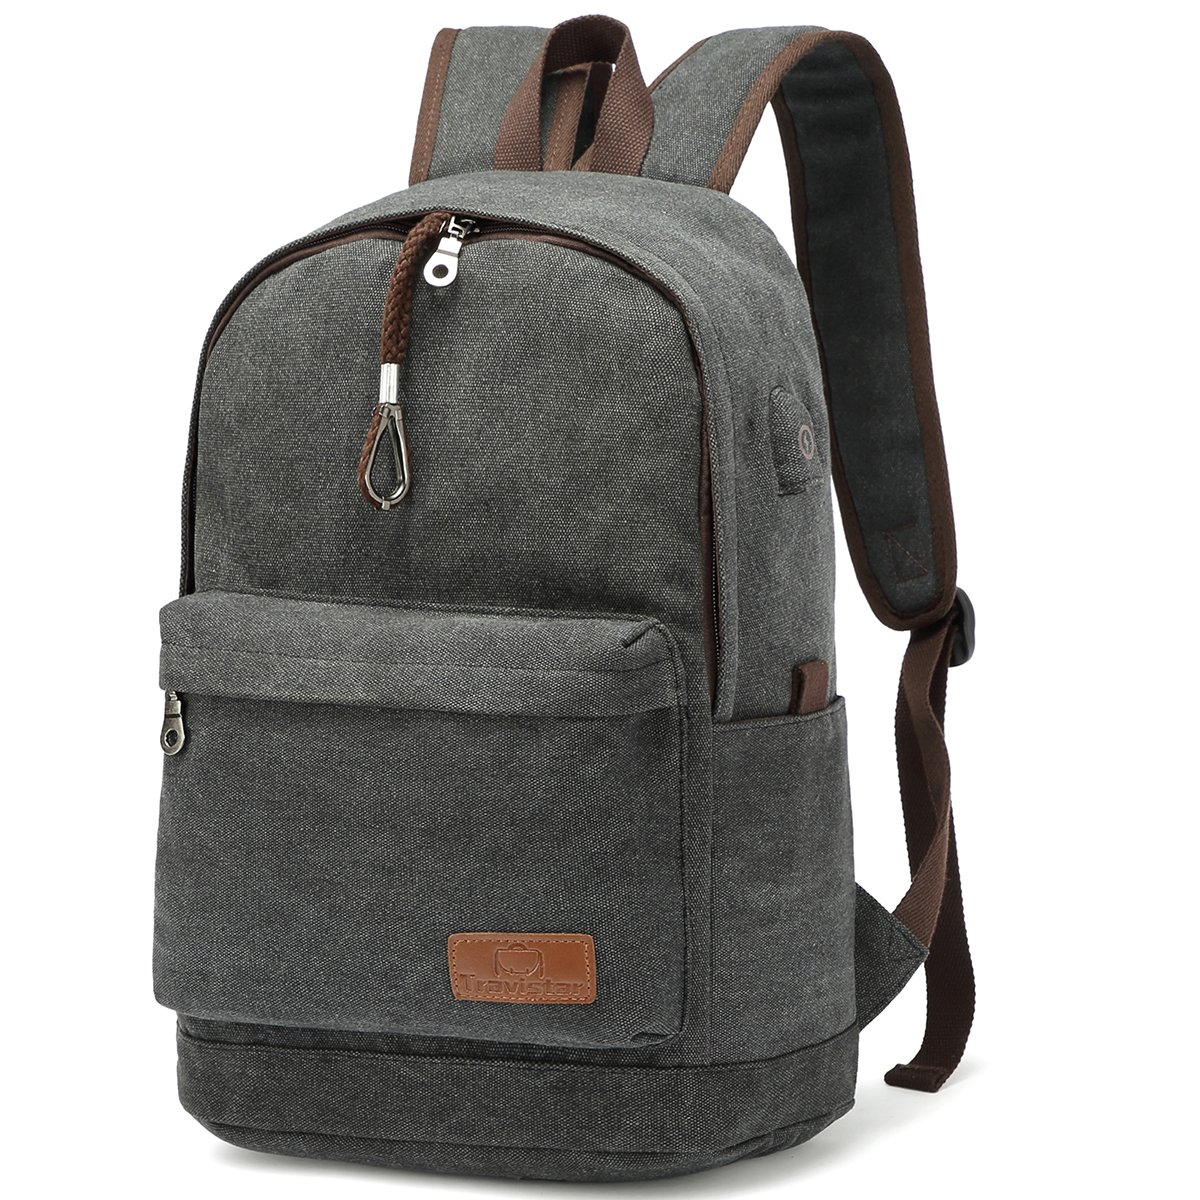 "Canvas School Backpack Travel Laptop Bag with USB Charging Port 15.6""Laptop"